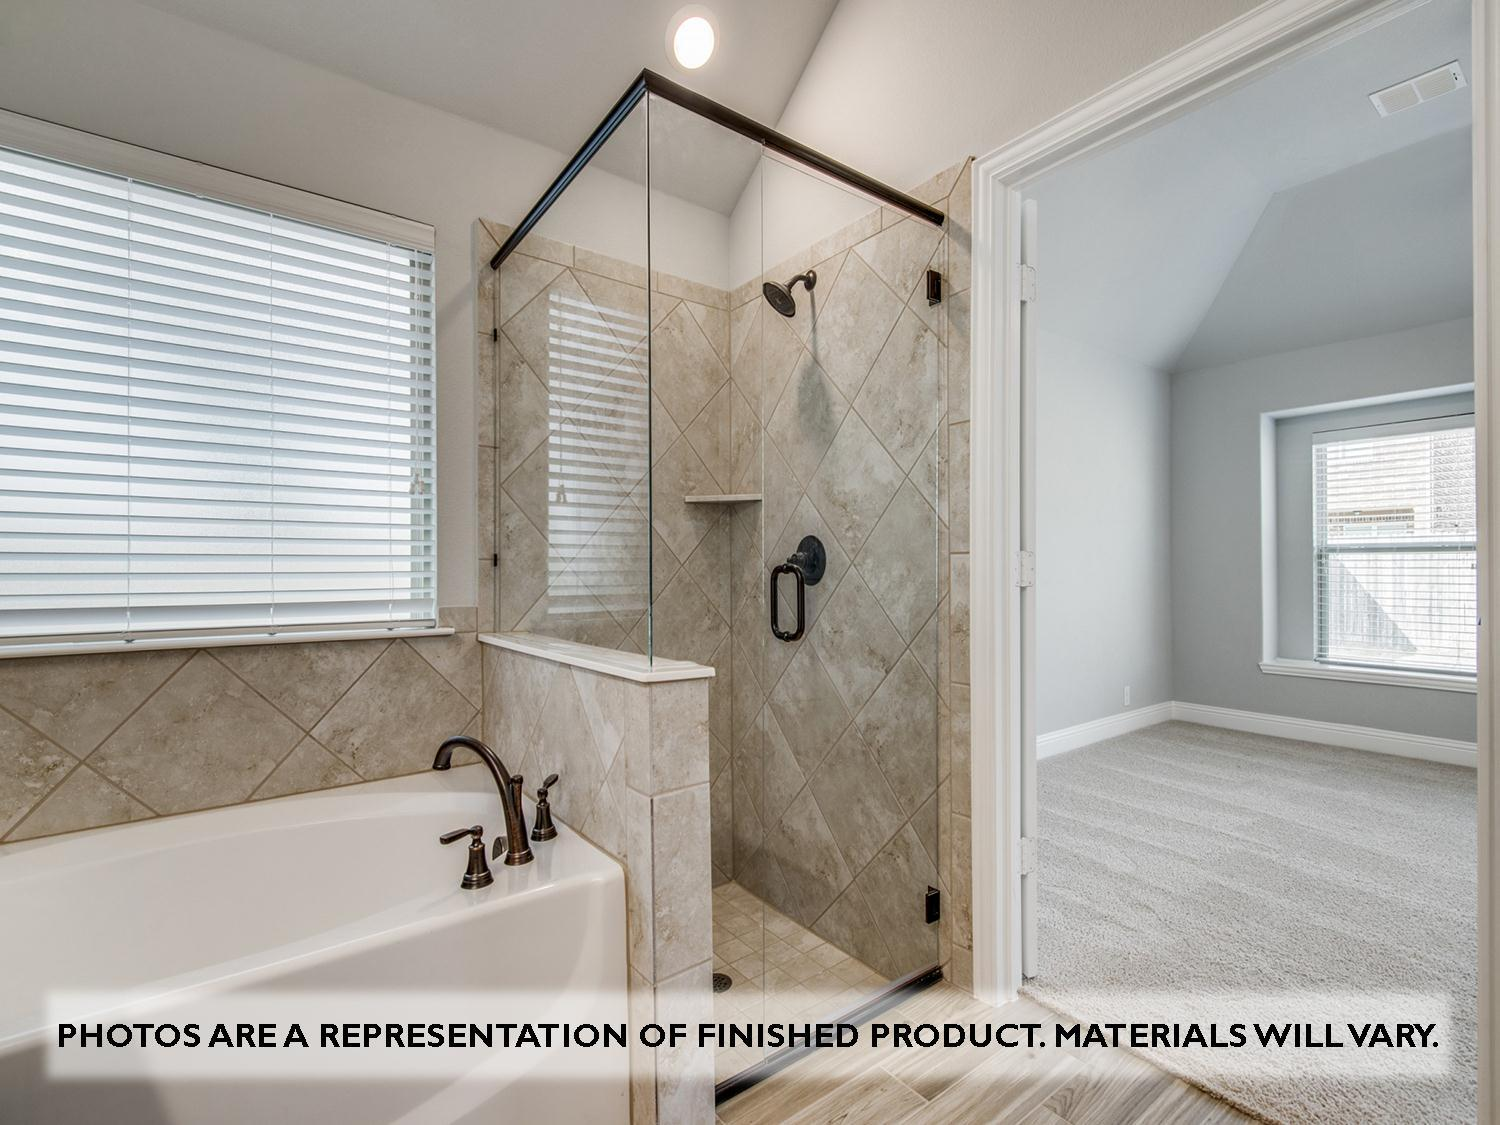 Bathroom featured in the Bluebonnet By Bloomfield Homes in Dallas, TX